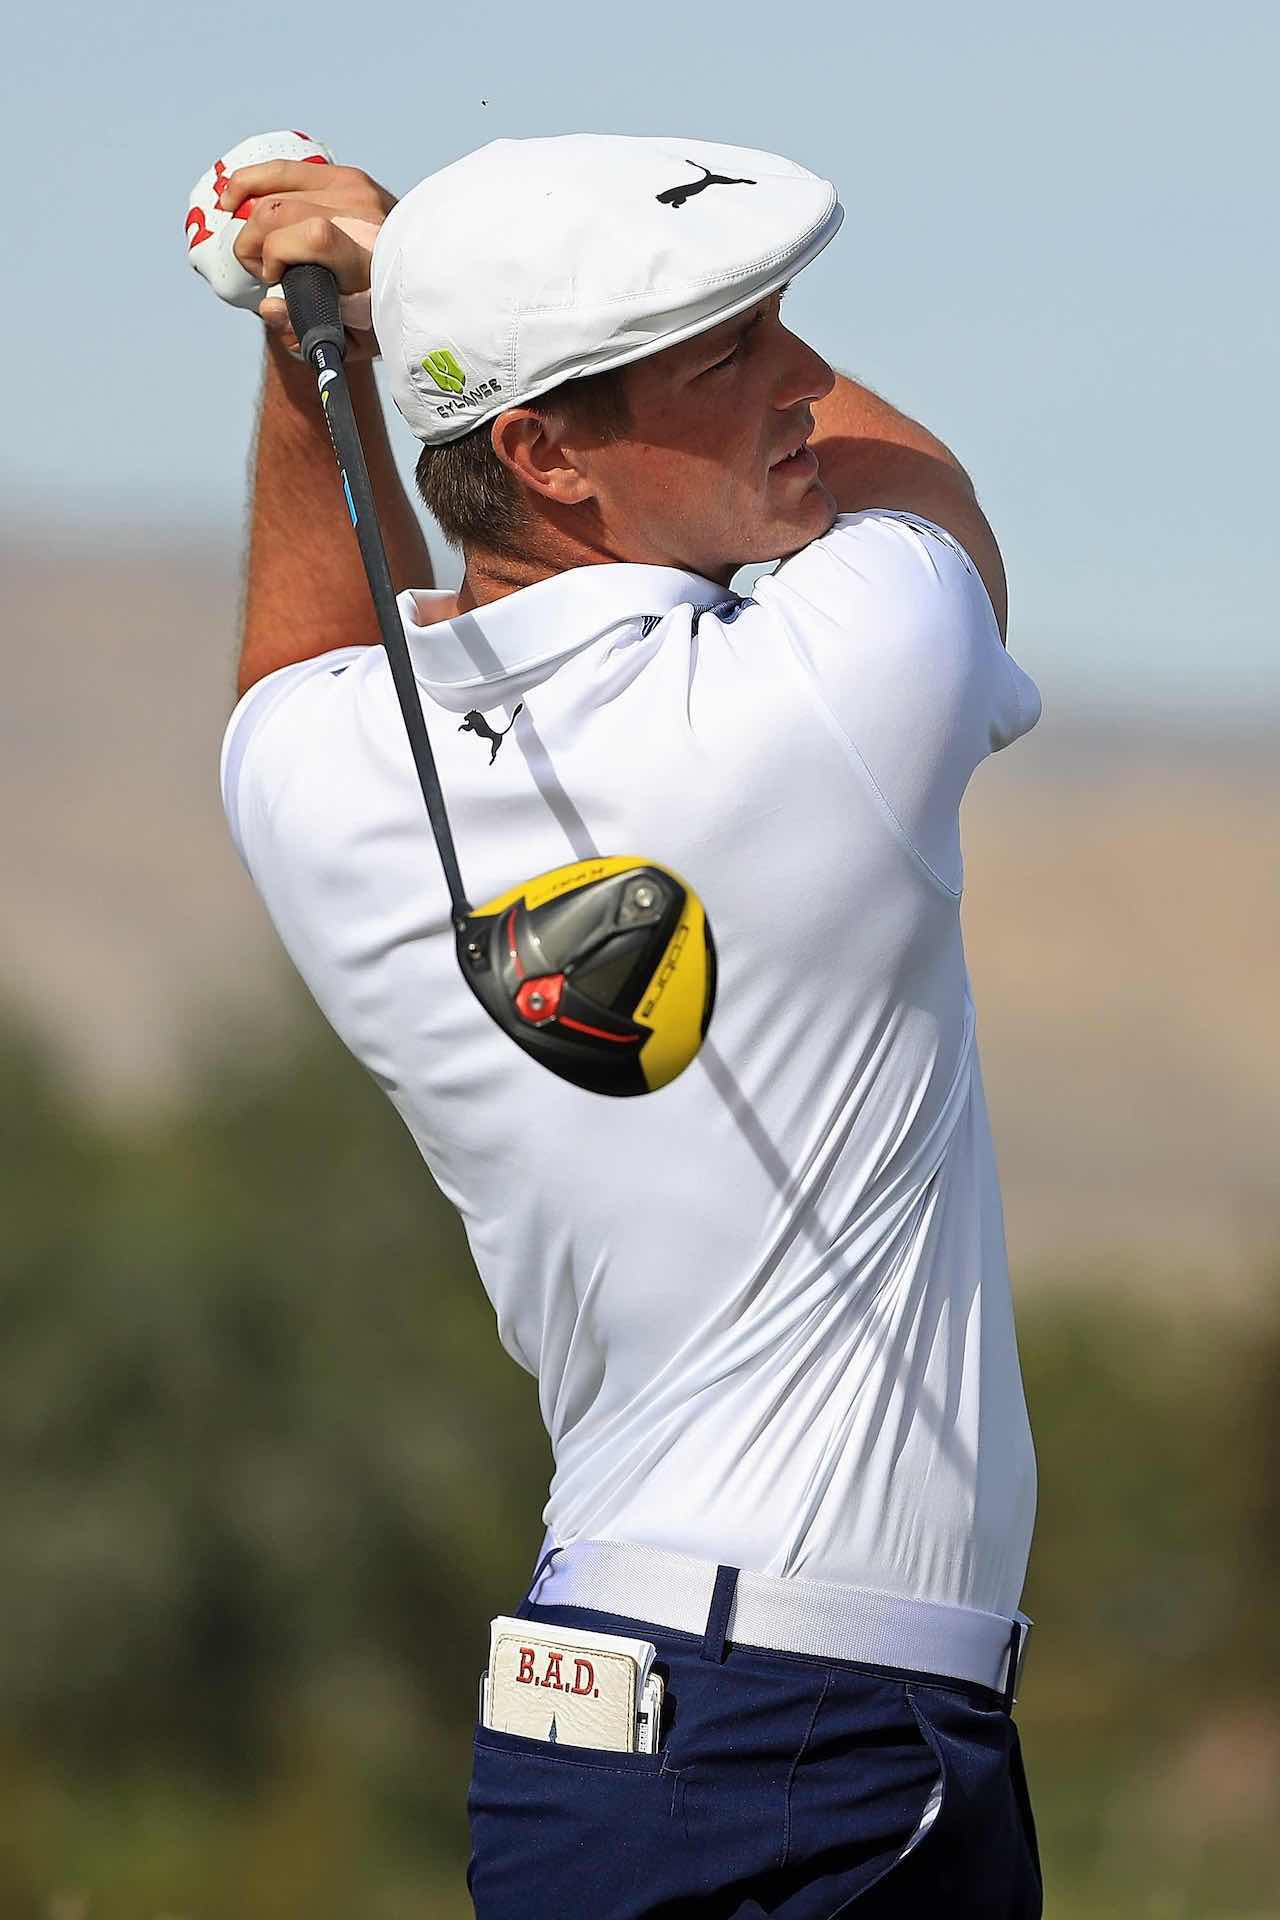 Bryson DeChambeau hits the jackpot in Vegas